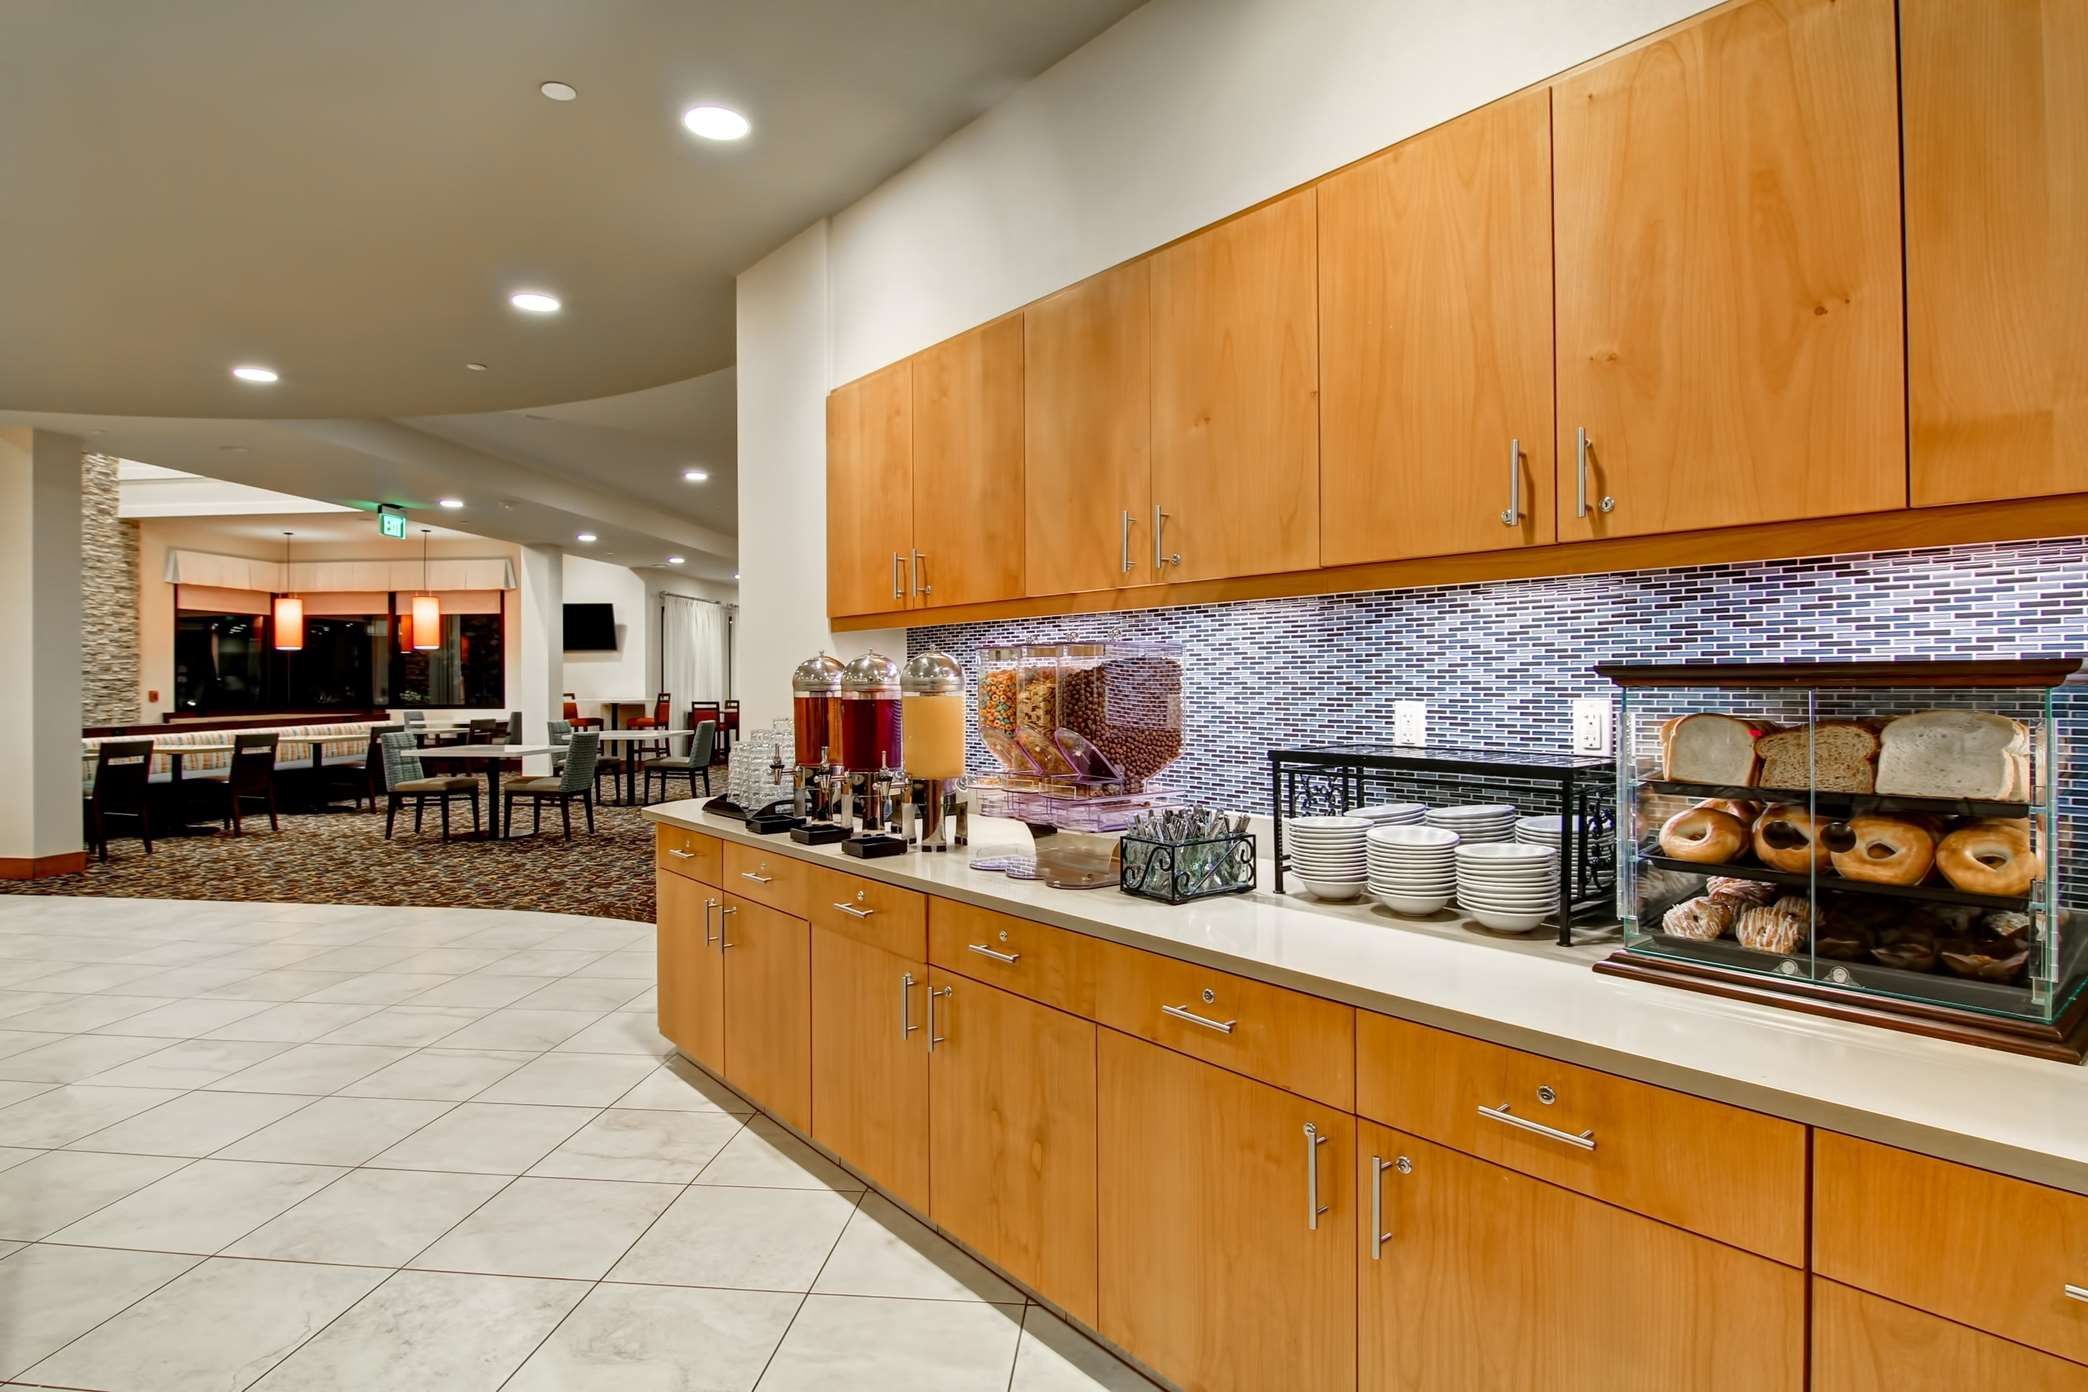 Homewood Suites by Hilton Seattle-Issaquah image 5